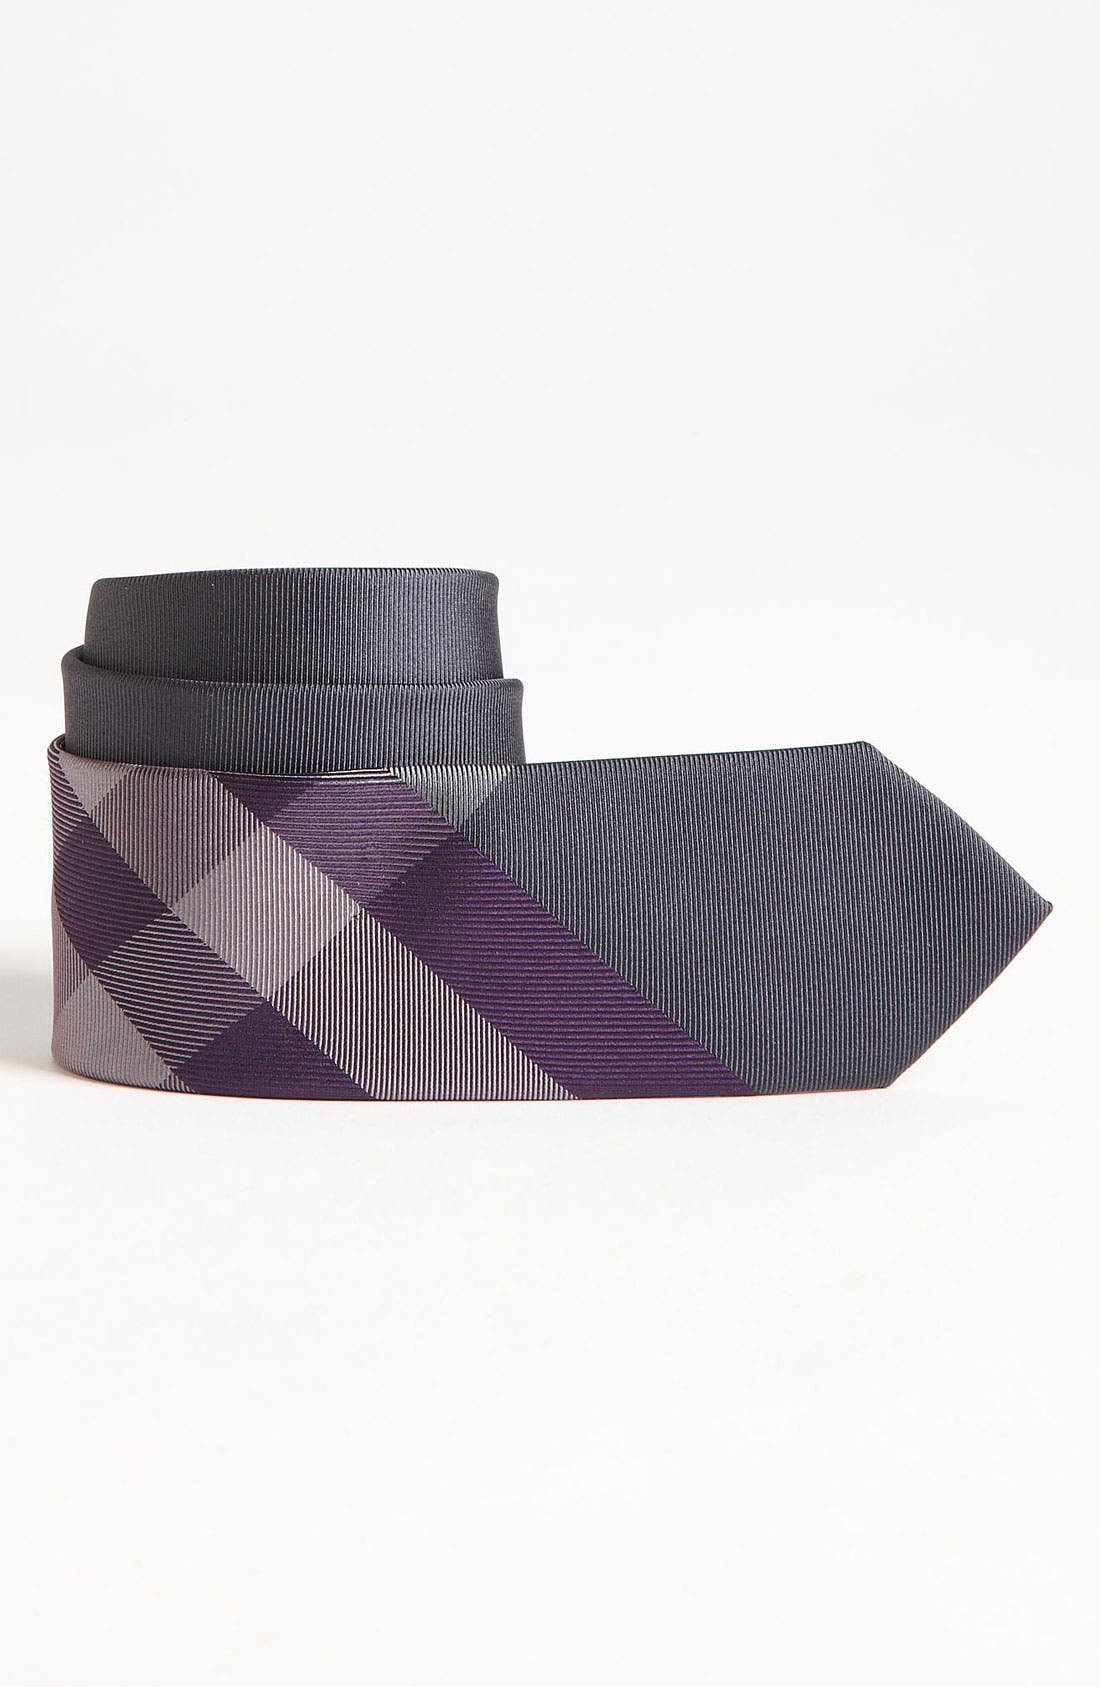 Alternate Image 1 Selected - Burberry Woven Silk Tie (Big Boys)